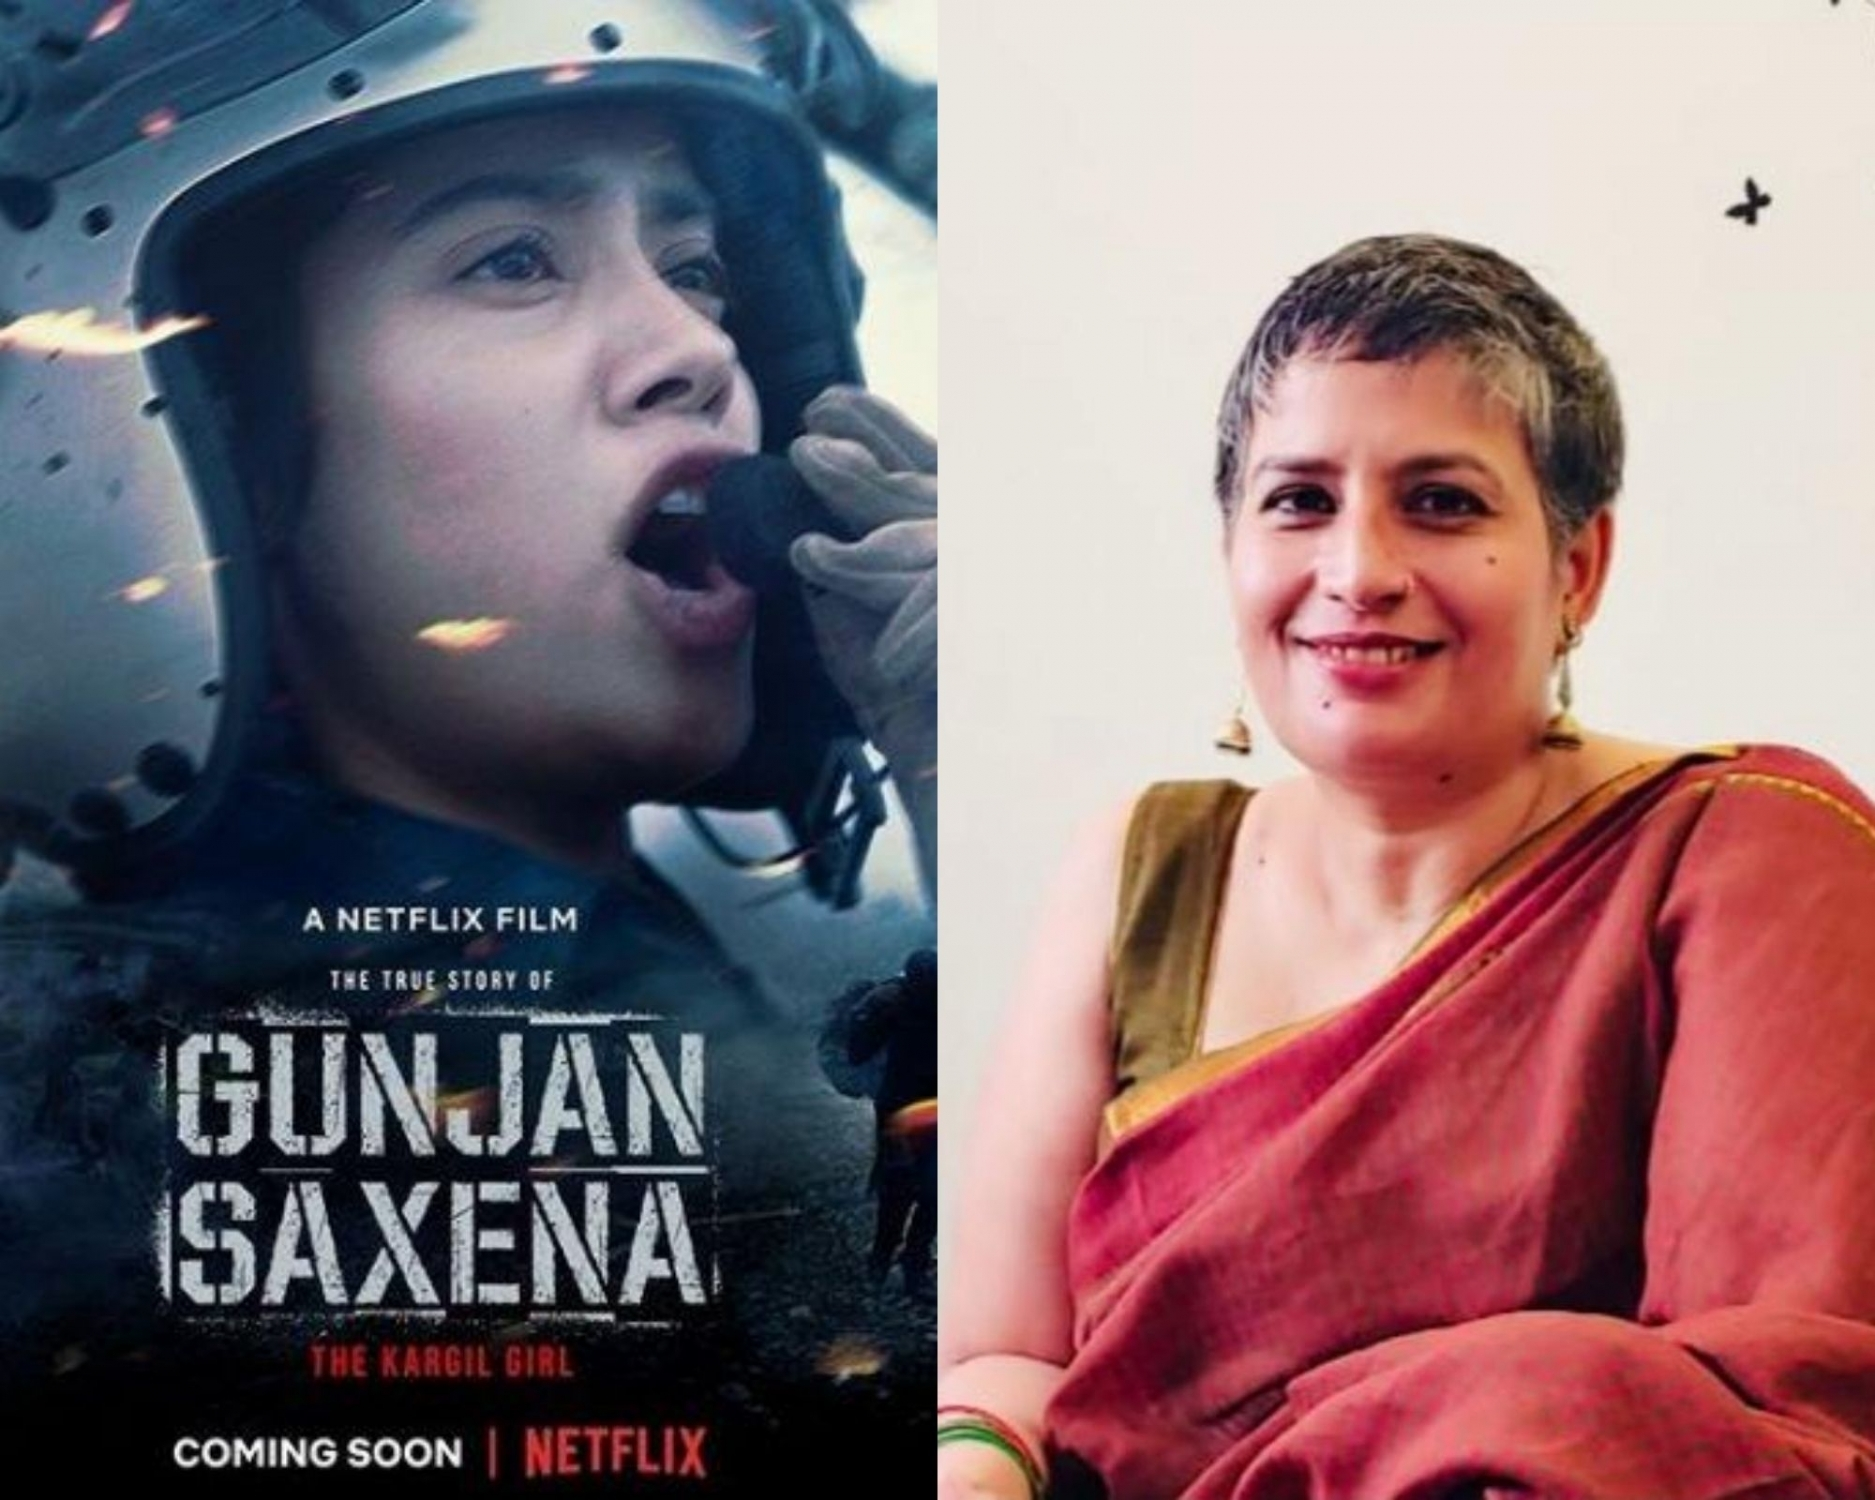 Gunjan Saxena Portrays Armed Forces In Bad Light Woman Navy Officer India Tribune